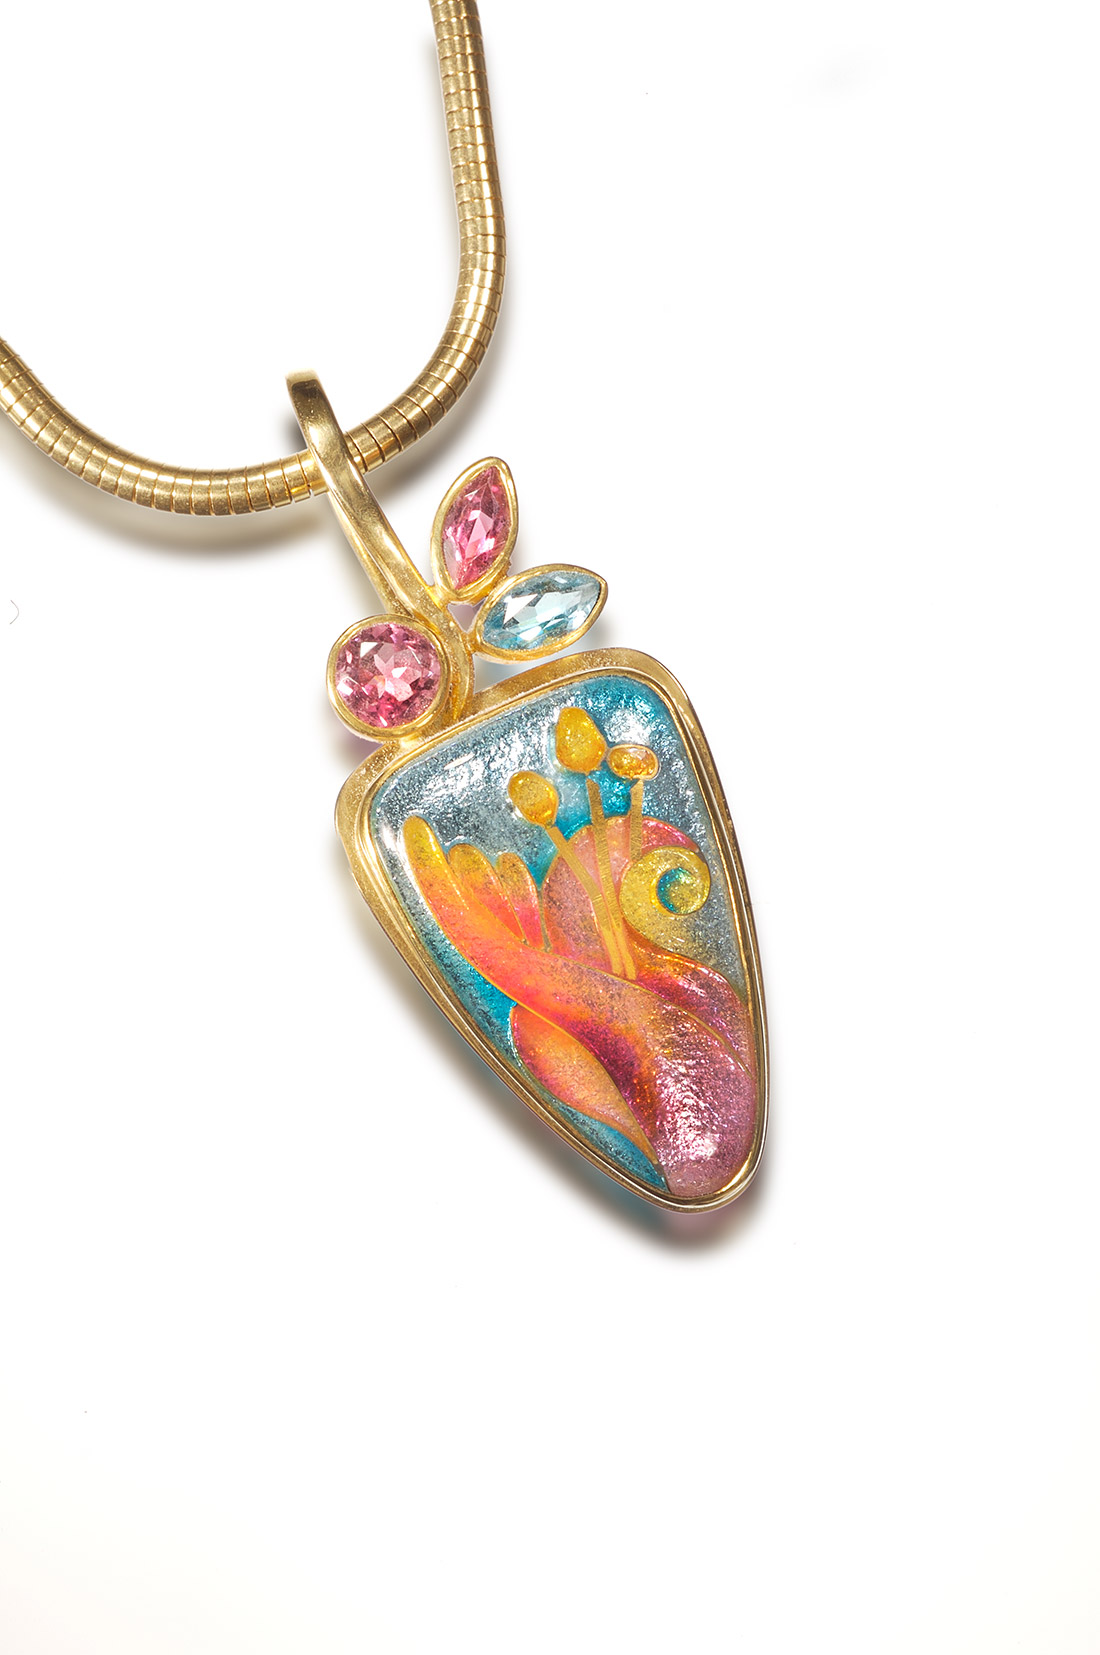 Cloisonne Jewelry | Lilium Necklace | Enamel Jewelry by Patsy Croft